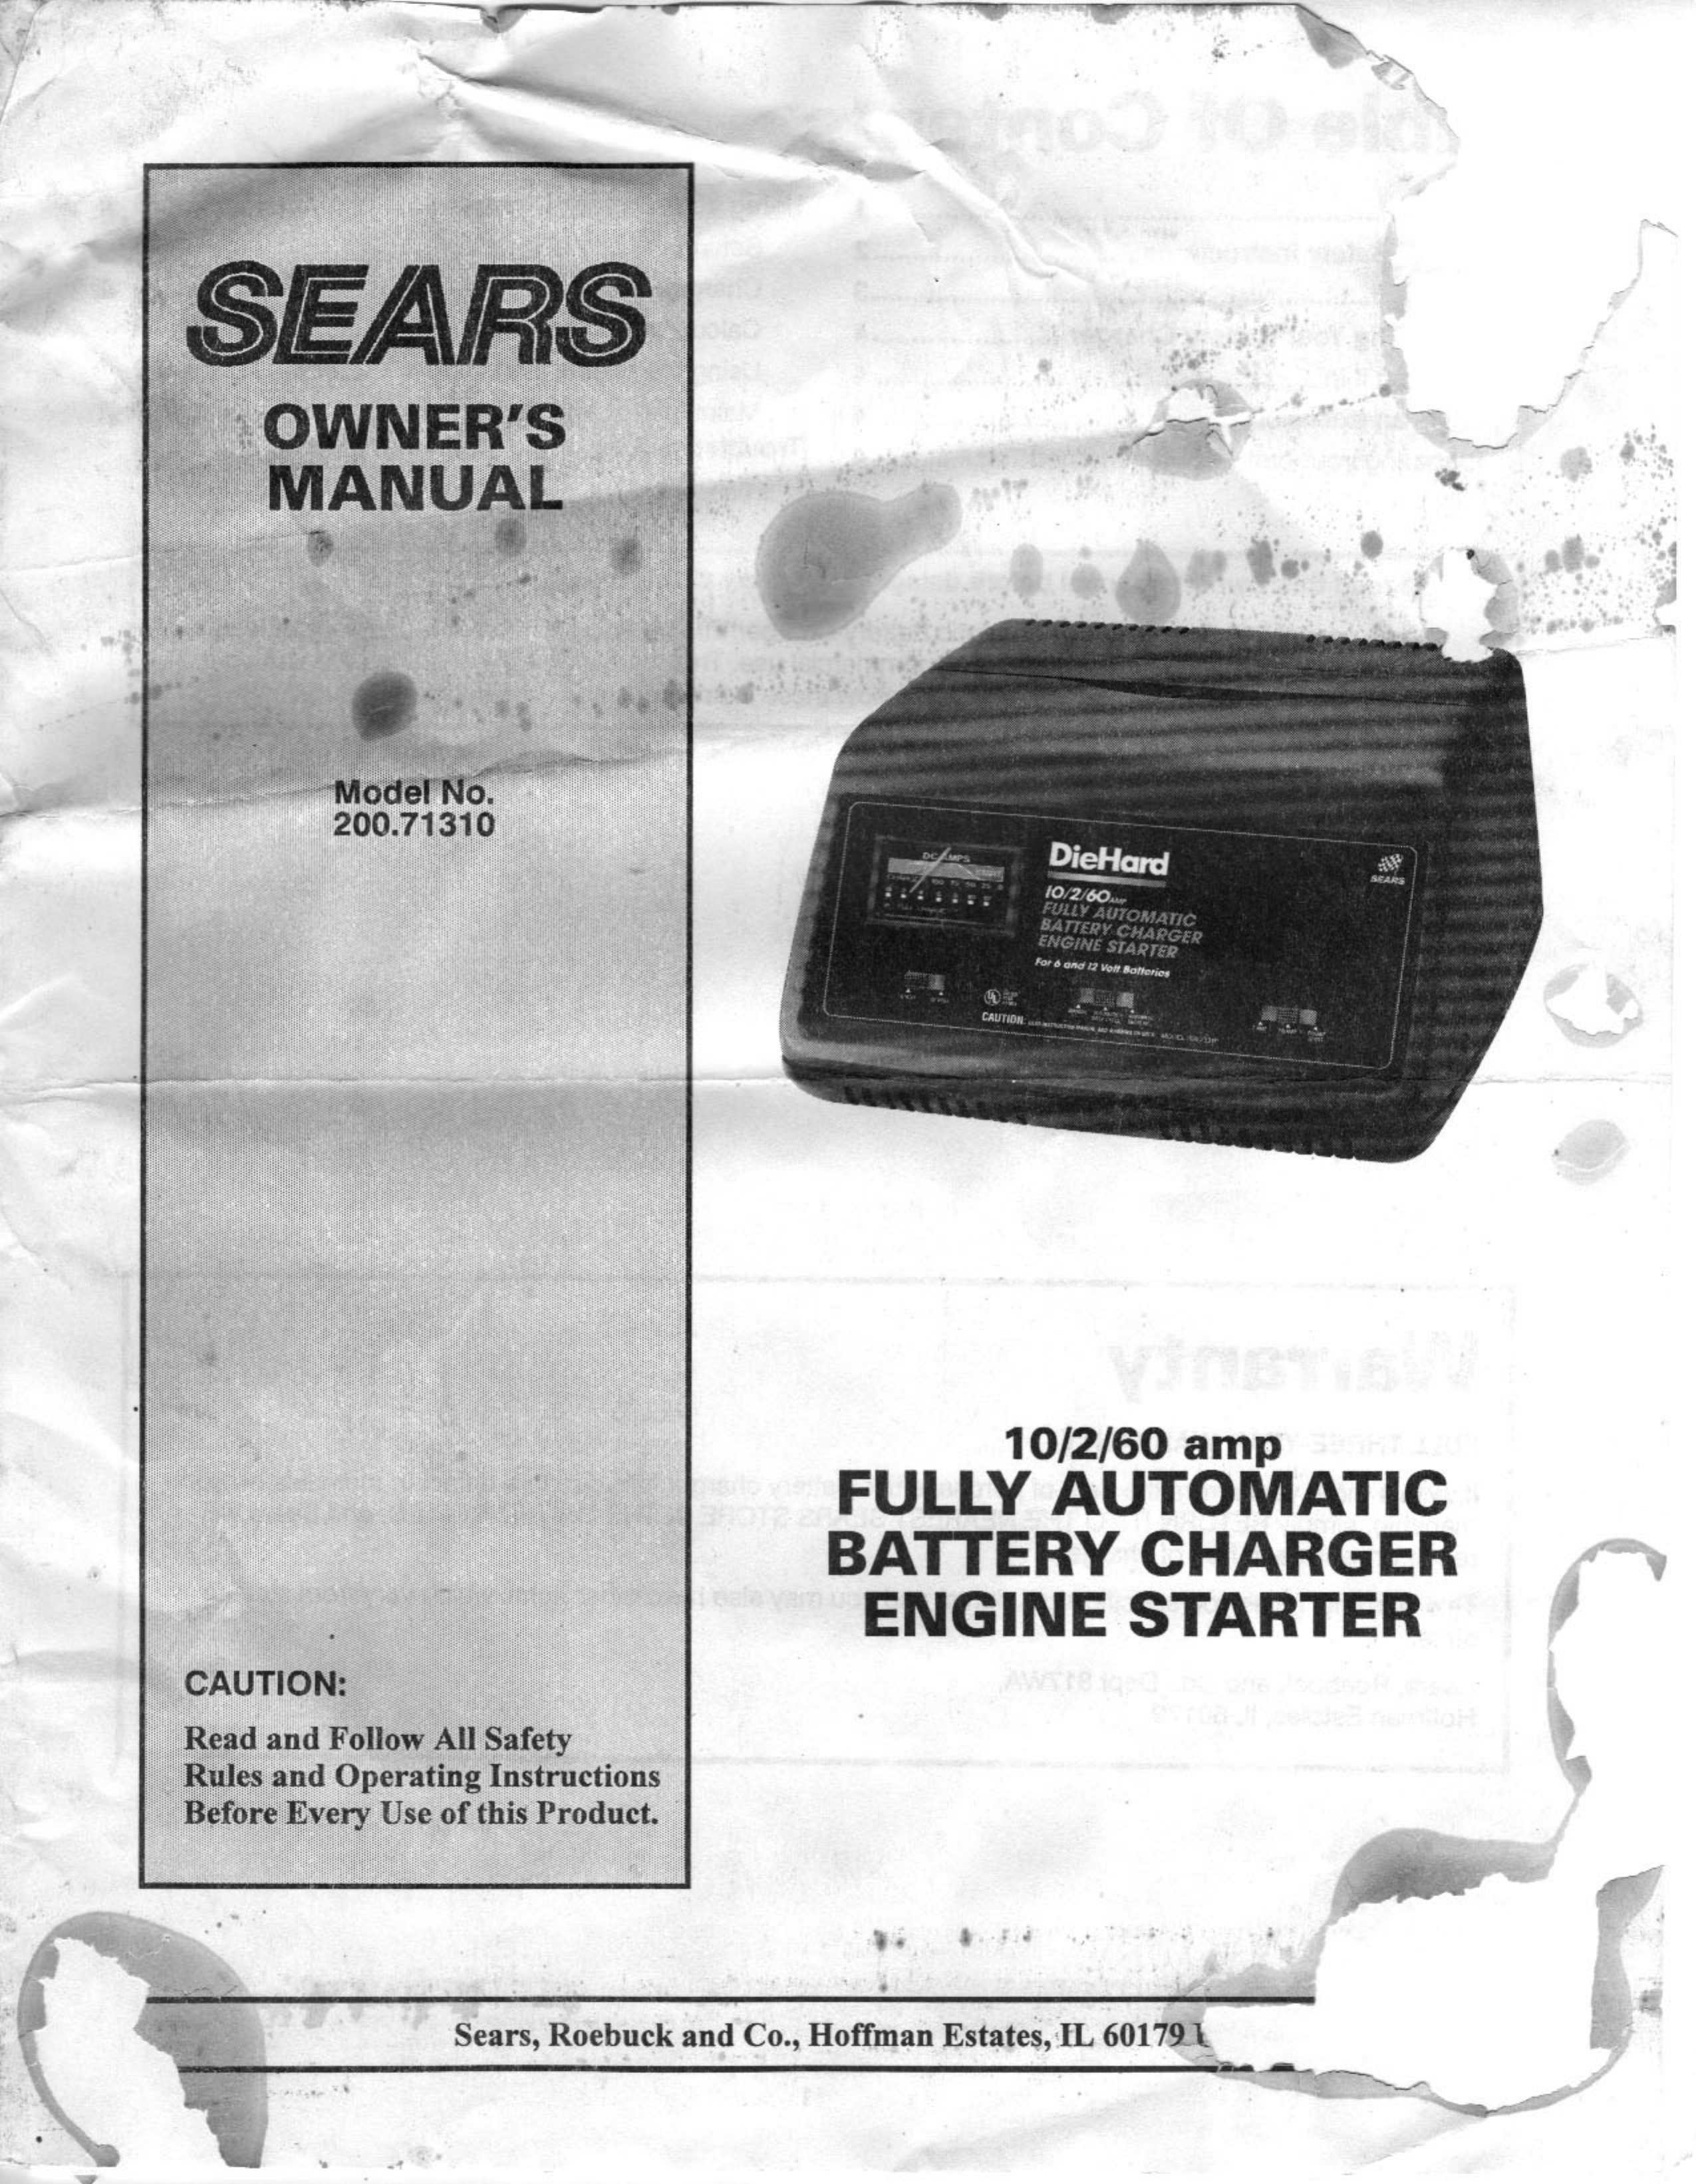 sears battery charger 200 71310 user guide manualsonline com sears 1.5 amp manual battery charger sears manual battery charger instructions